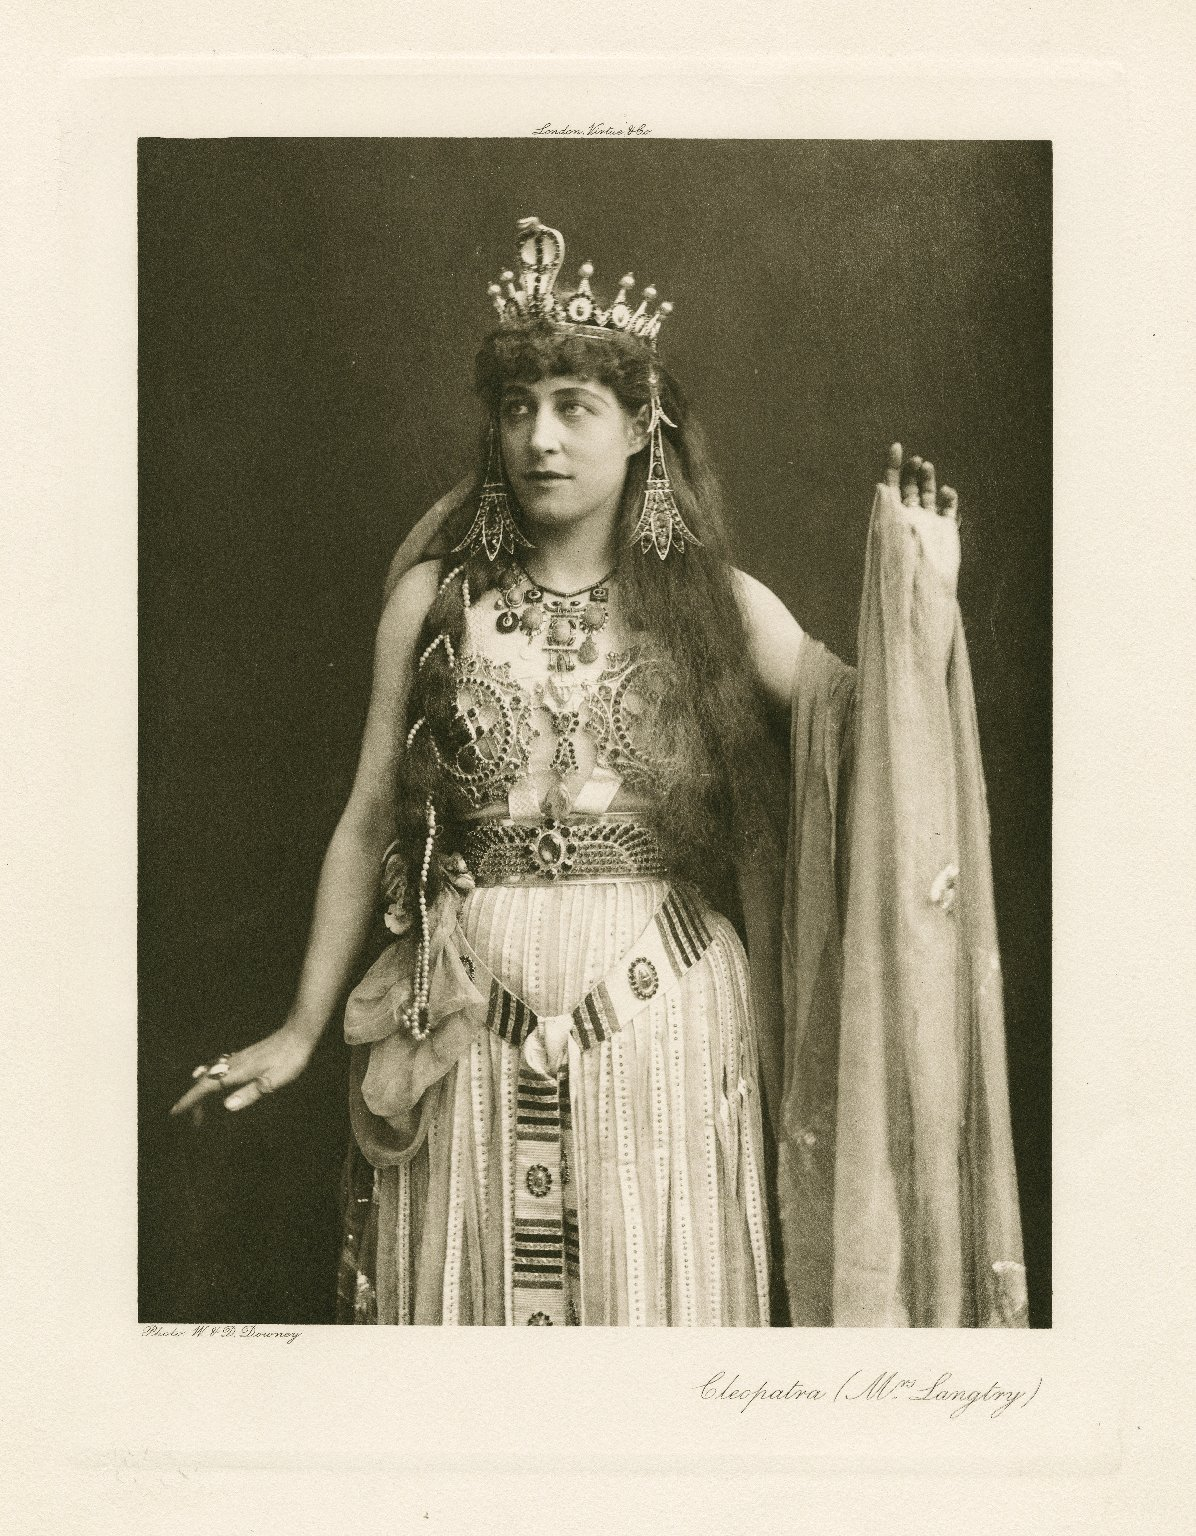 Photograph of Lillie Langtry in the role of Cleopatra (1891)